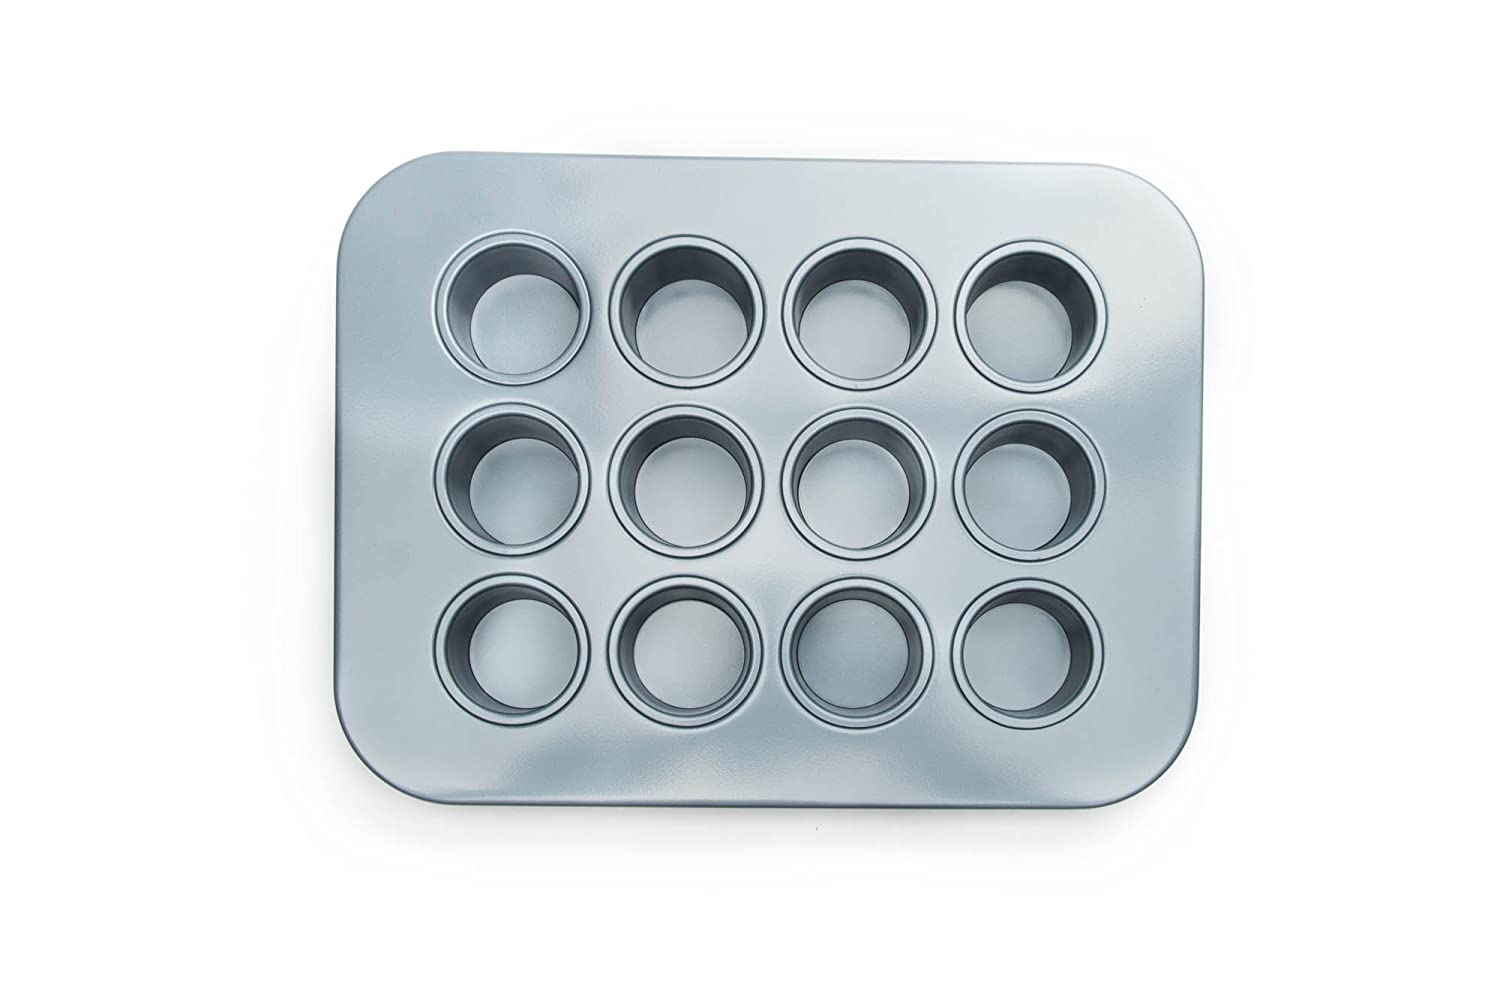 Chicago Metallic 77122 2-Inch by 1.6-Inch Cavities Mini Cheesecake Pan 12 Cavity, 13.90-Inch by 10.60-Inch